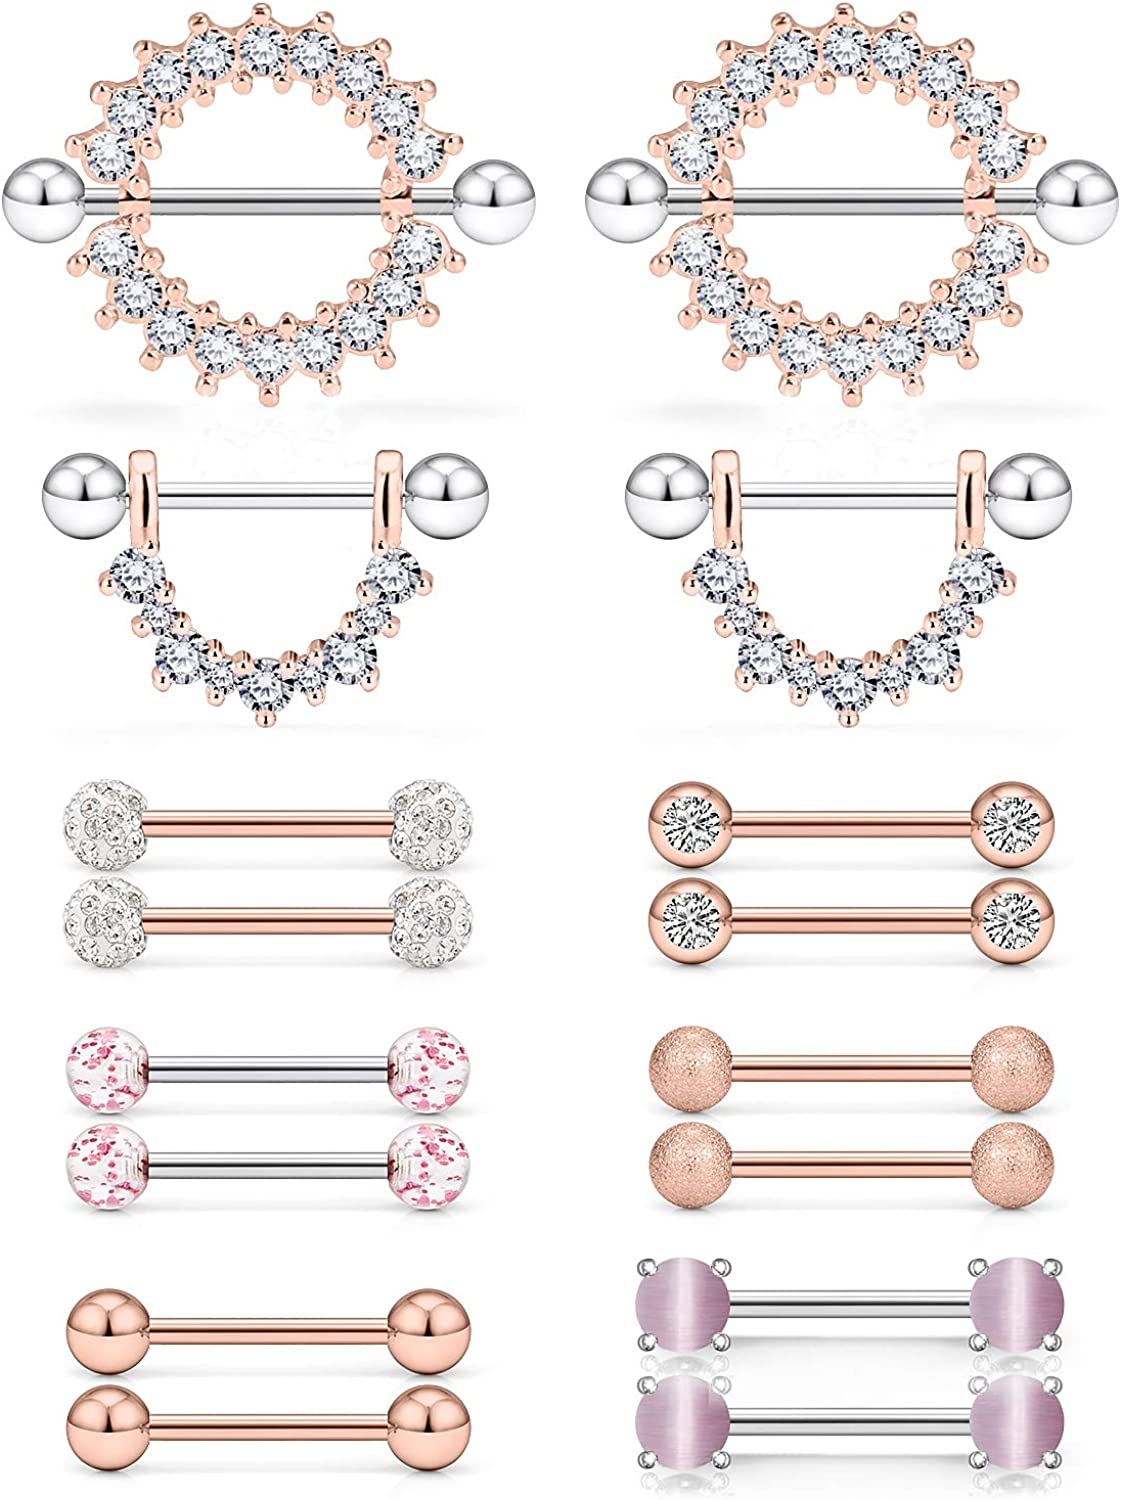 Lcolyoli 16G Cat's Eye Stone Nipple Rings Surgical Steel Dangle Nipplerings Tongue Ring CZ Straight Barbell Piercing Body Jewelry for Women Men 8 Pairs